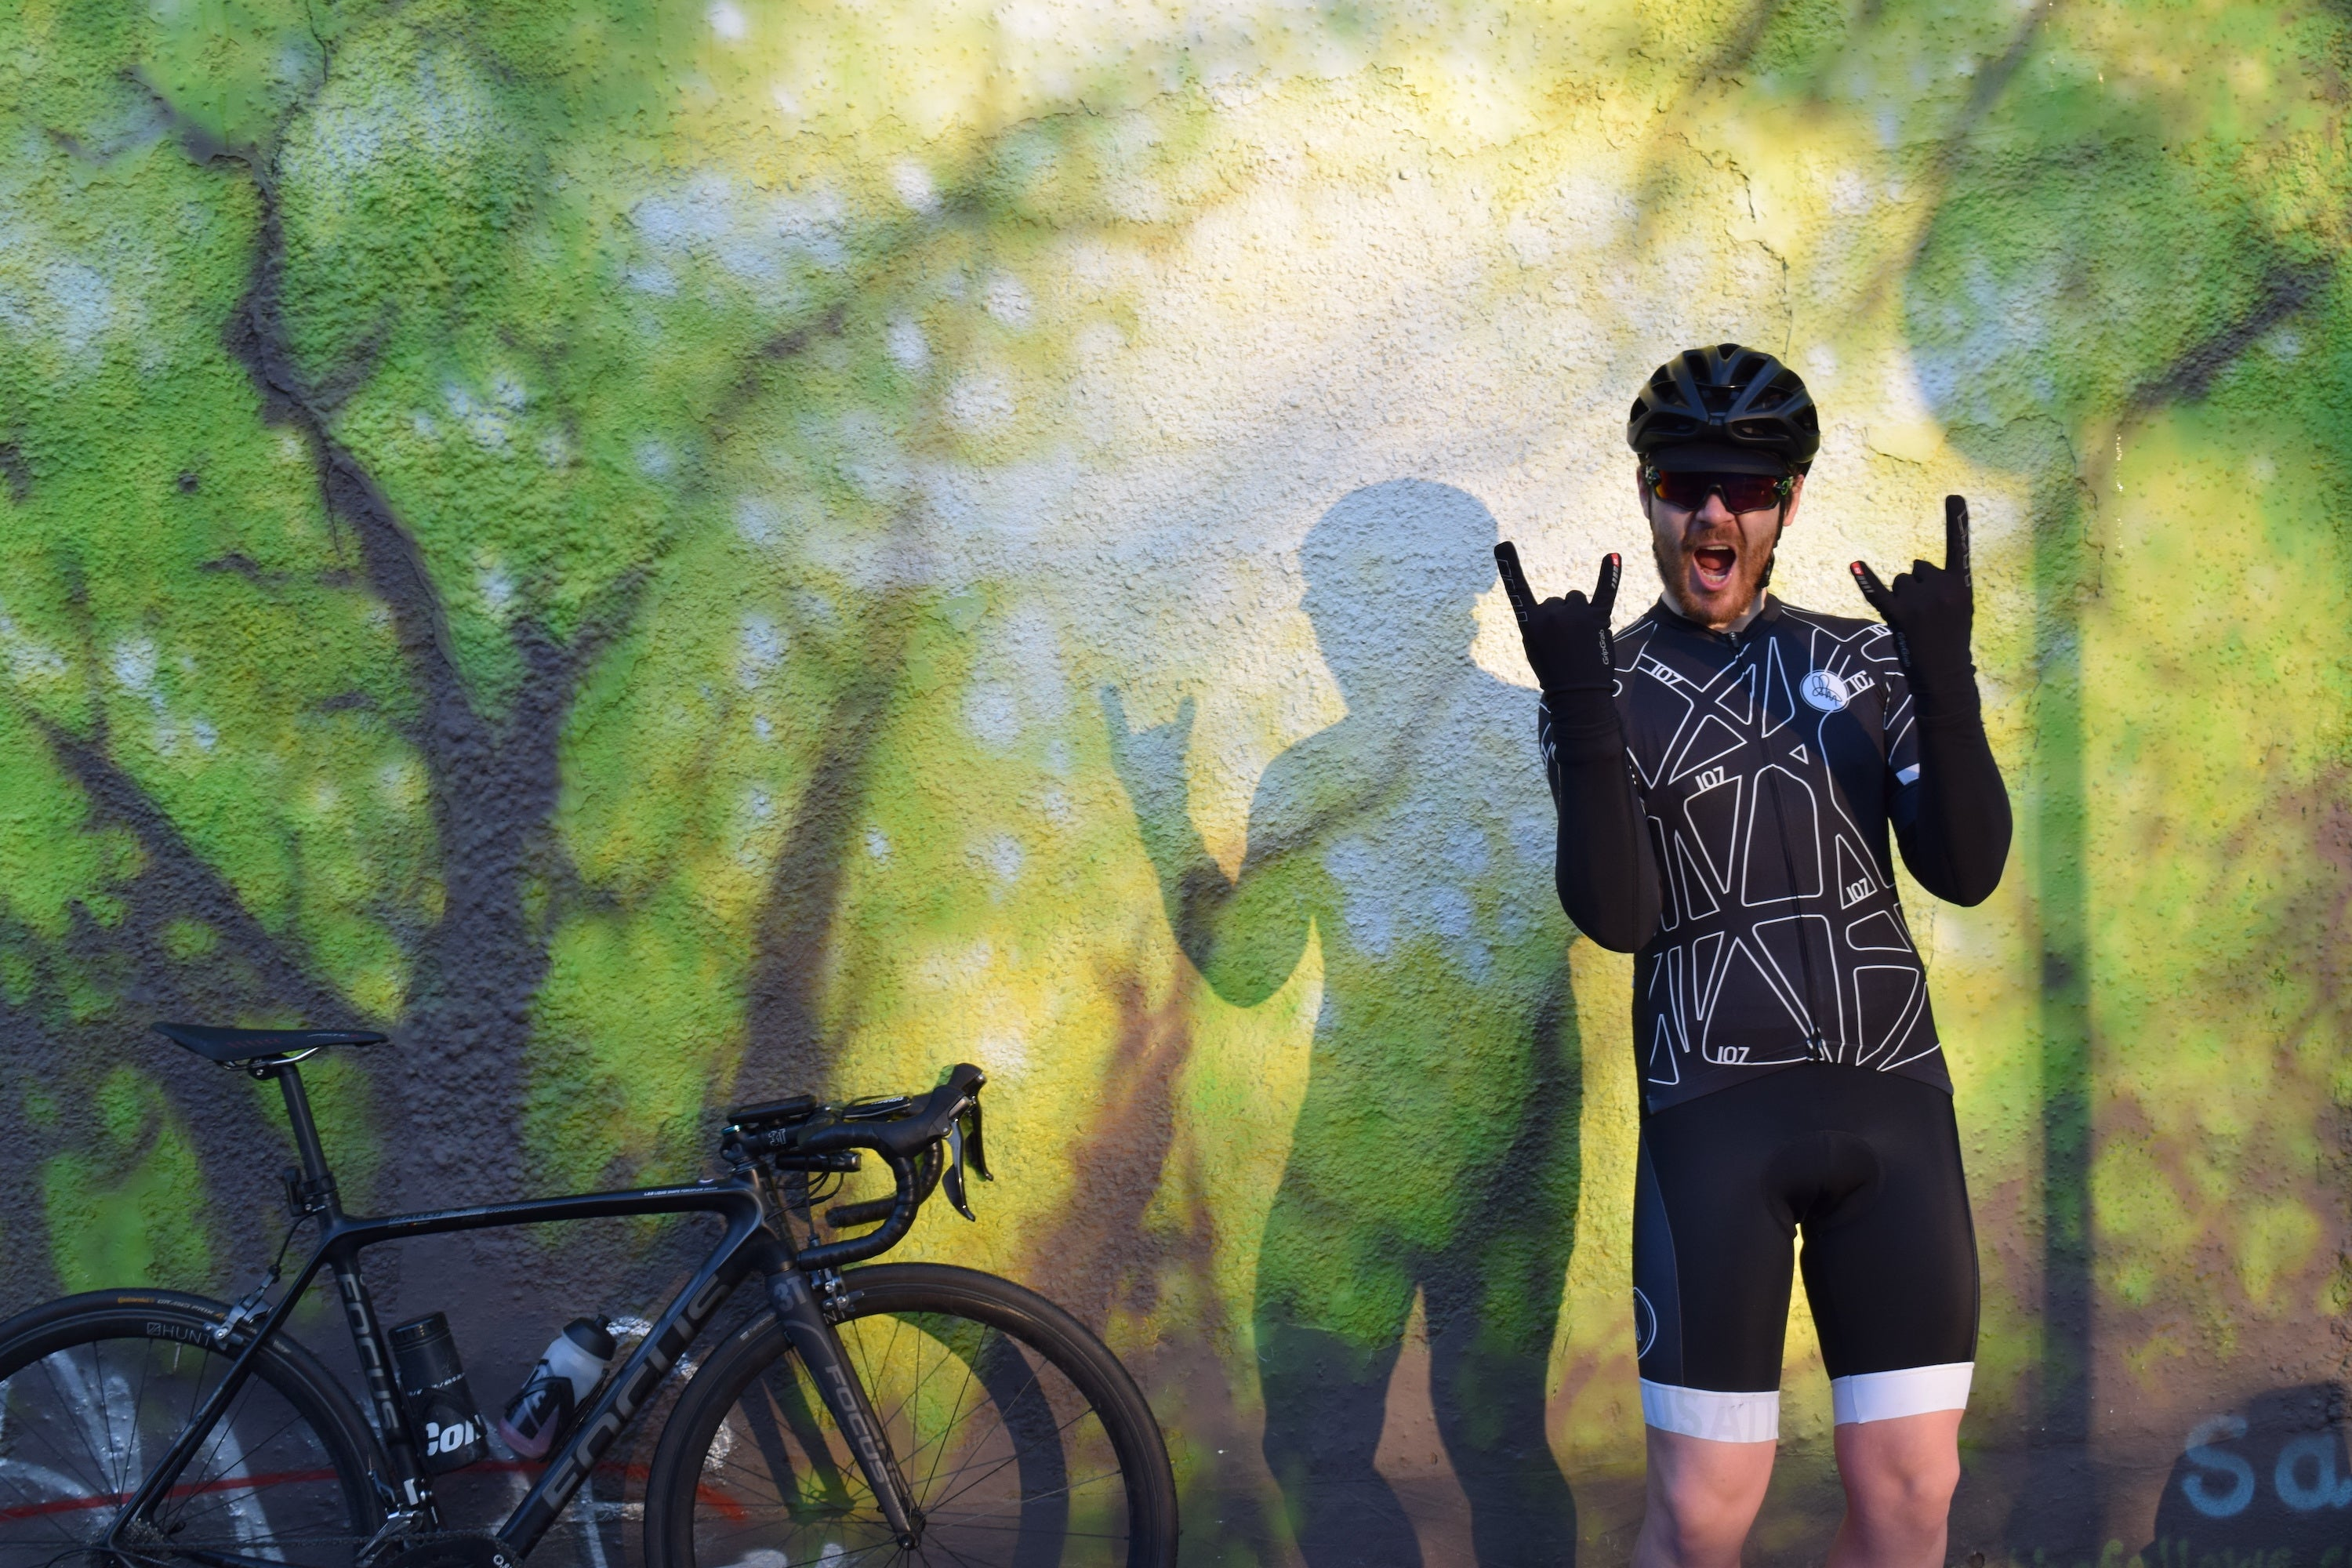 Endurance cyclist Chris Hall rides 107 for 107 challenge in Attacus Cycling jersey